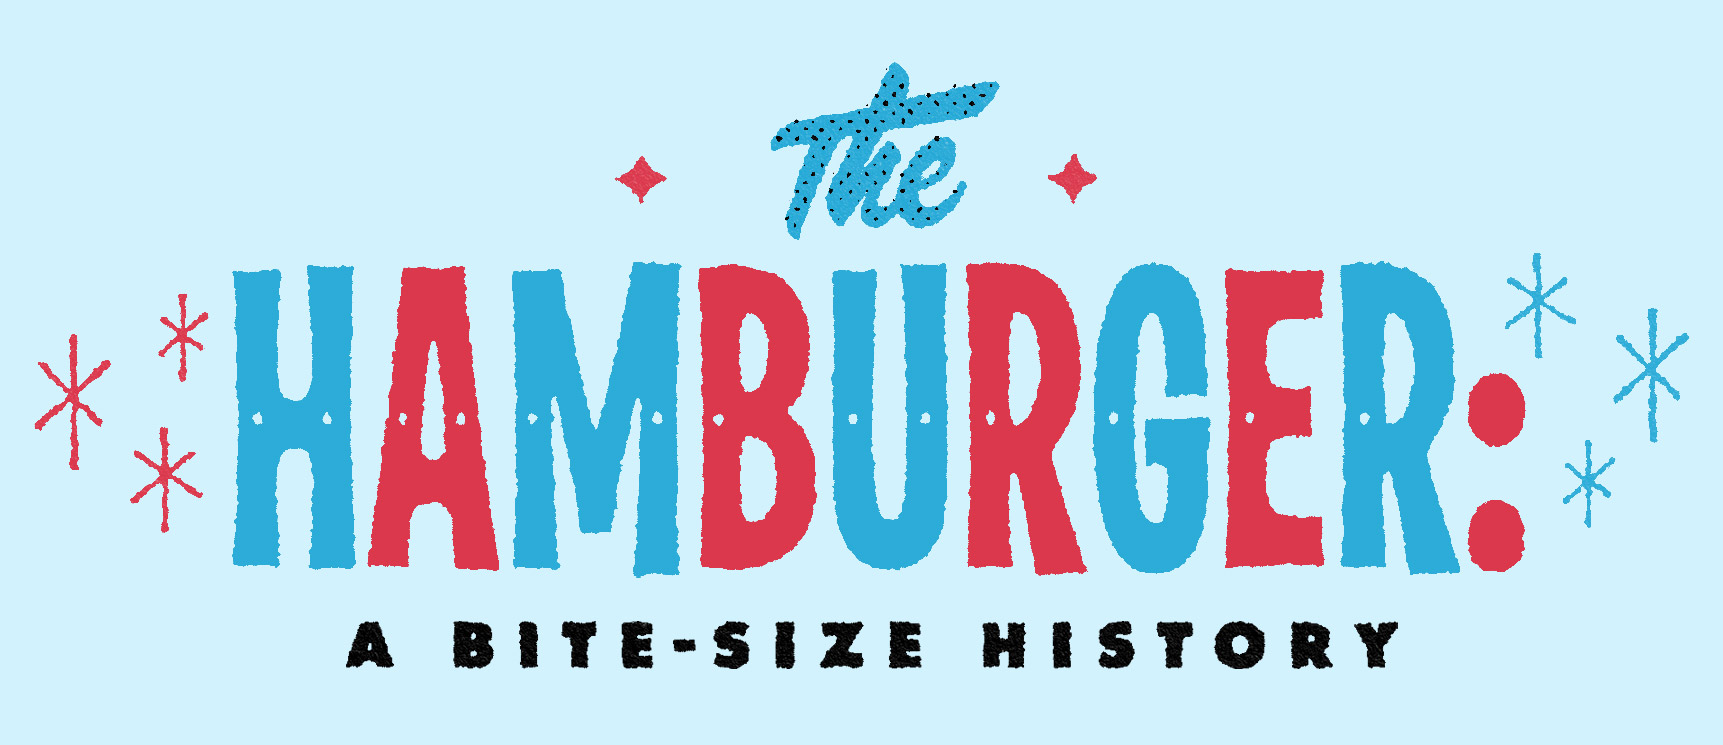 "Illustrated text that reads ""the hamburger a bite-size history""."